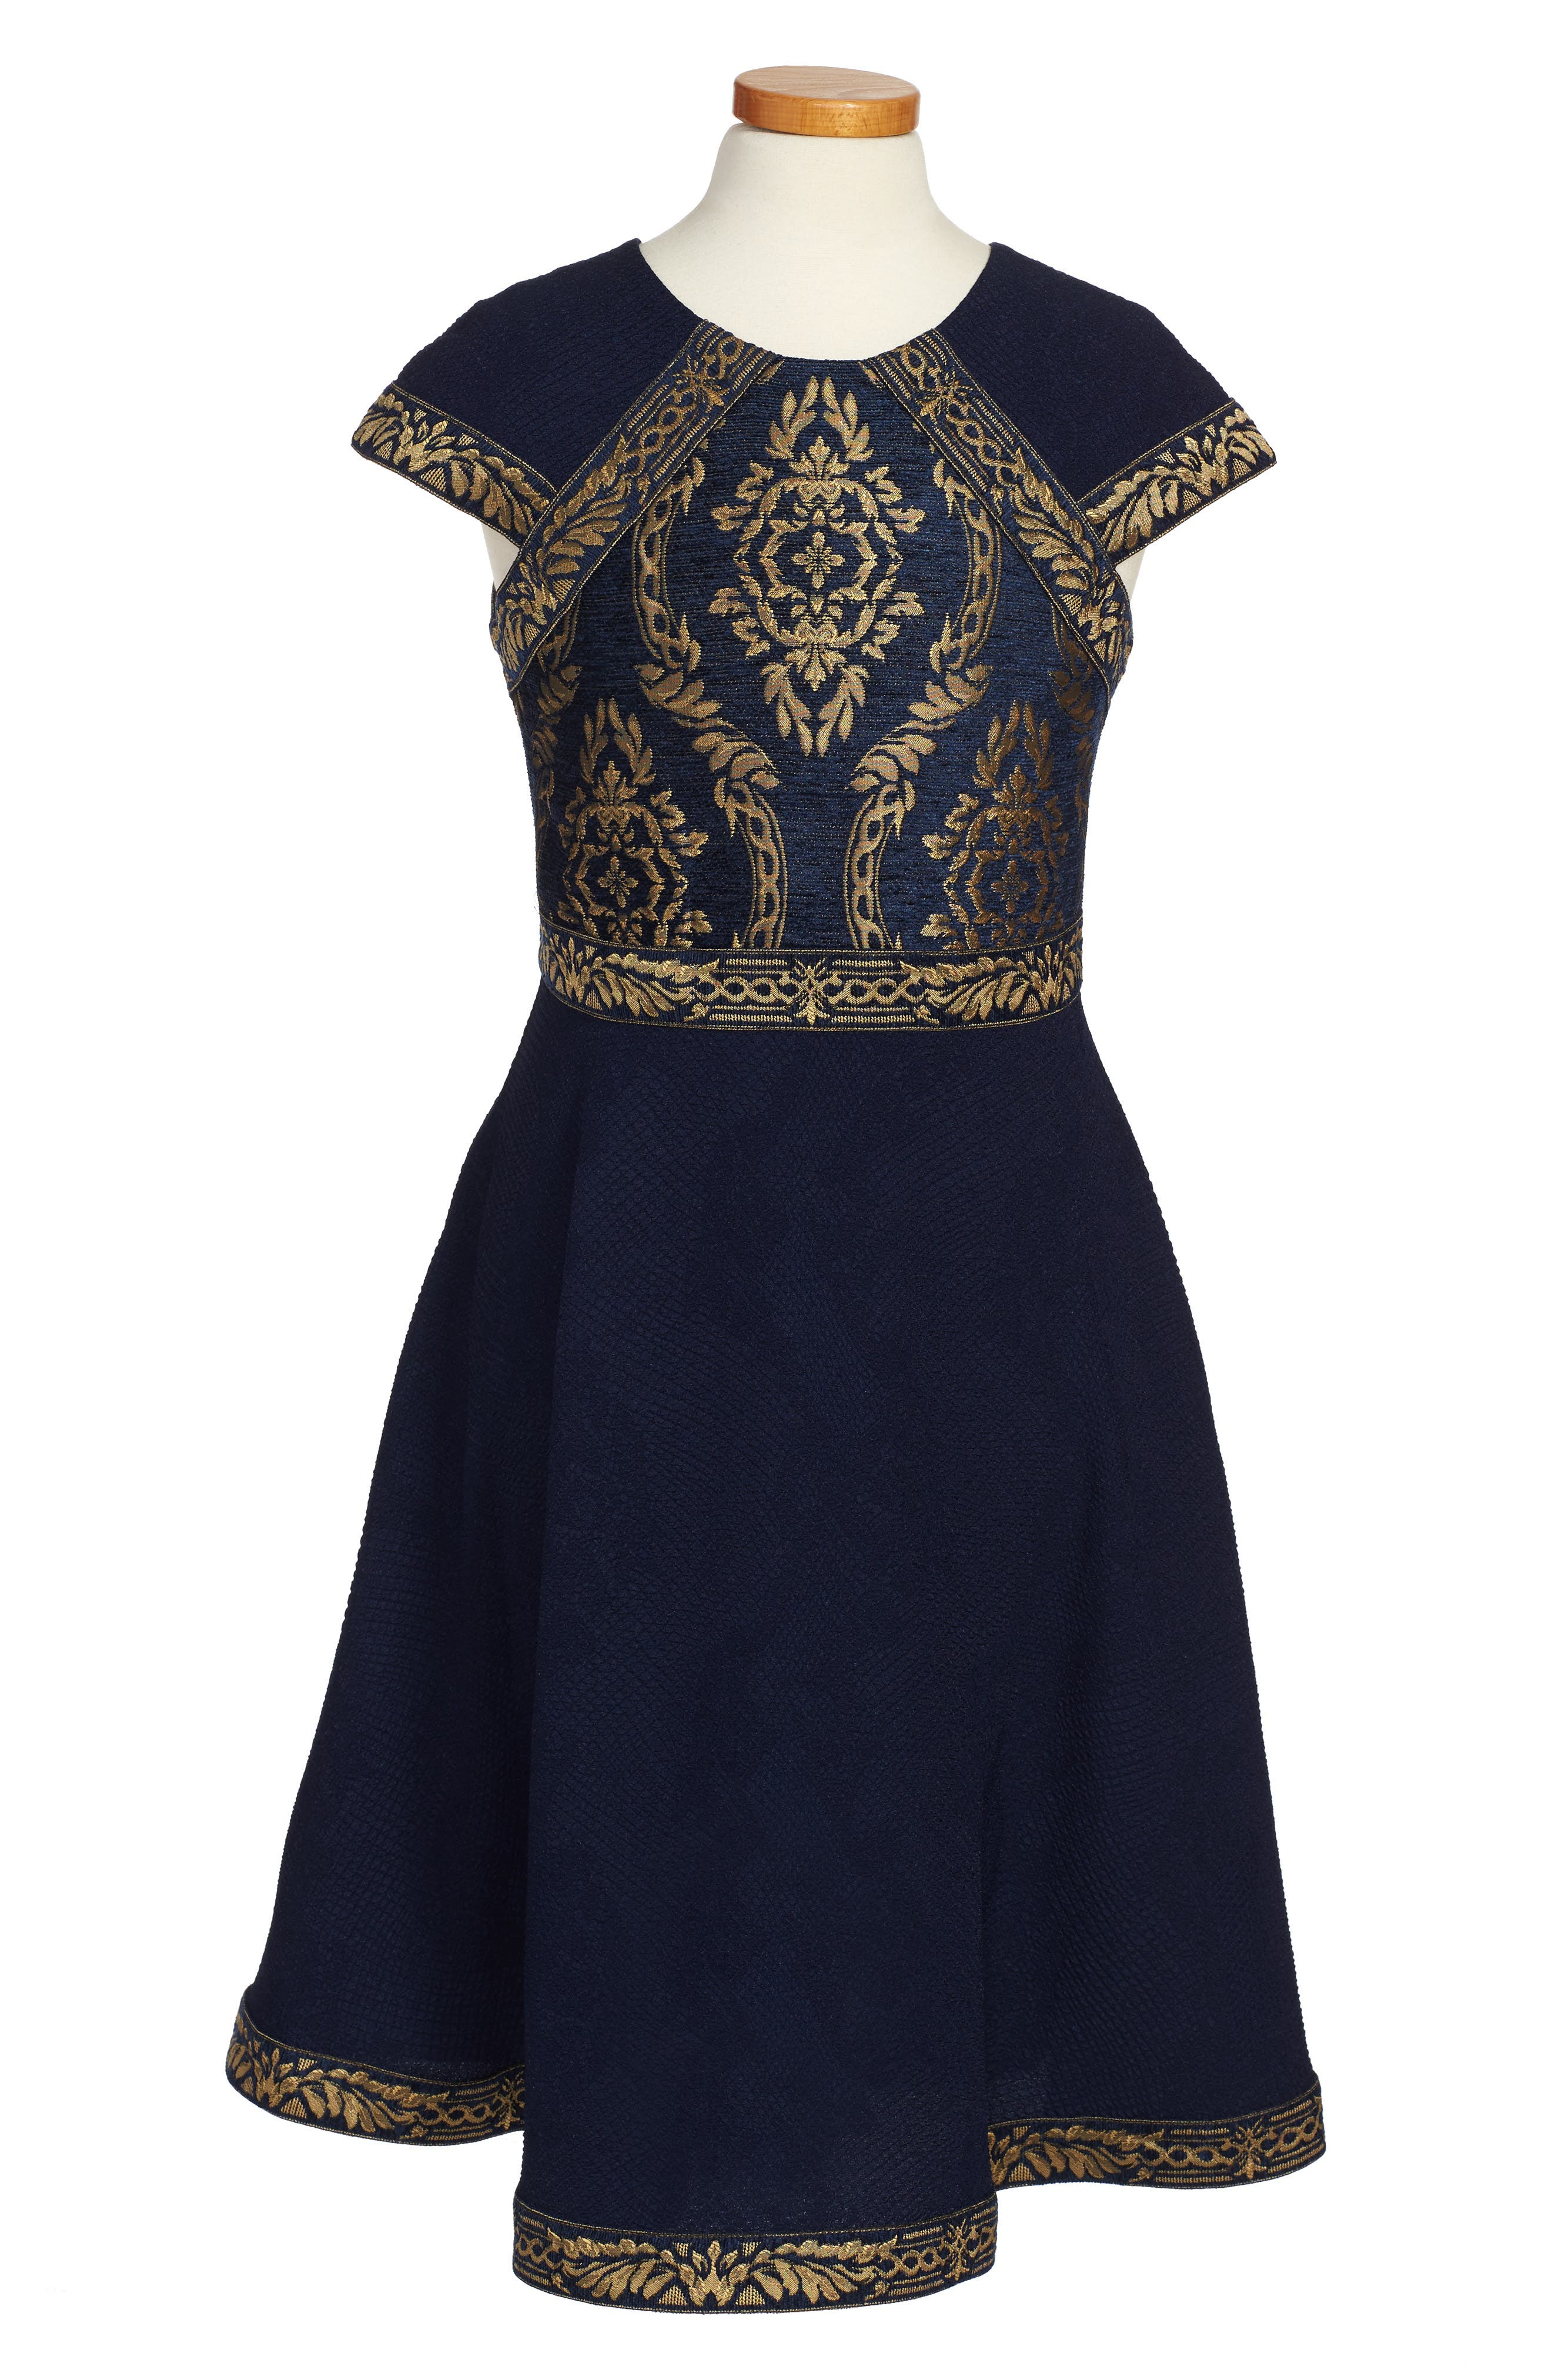 Brocade Embroidery Party Dress,                         Main,                         color, Navy/ Gold